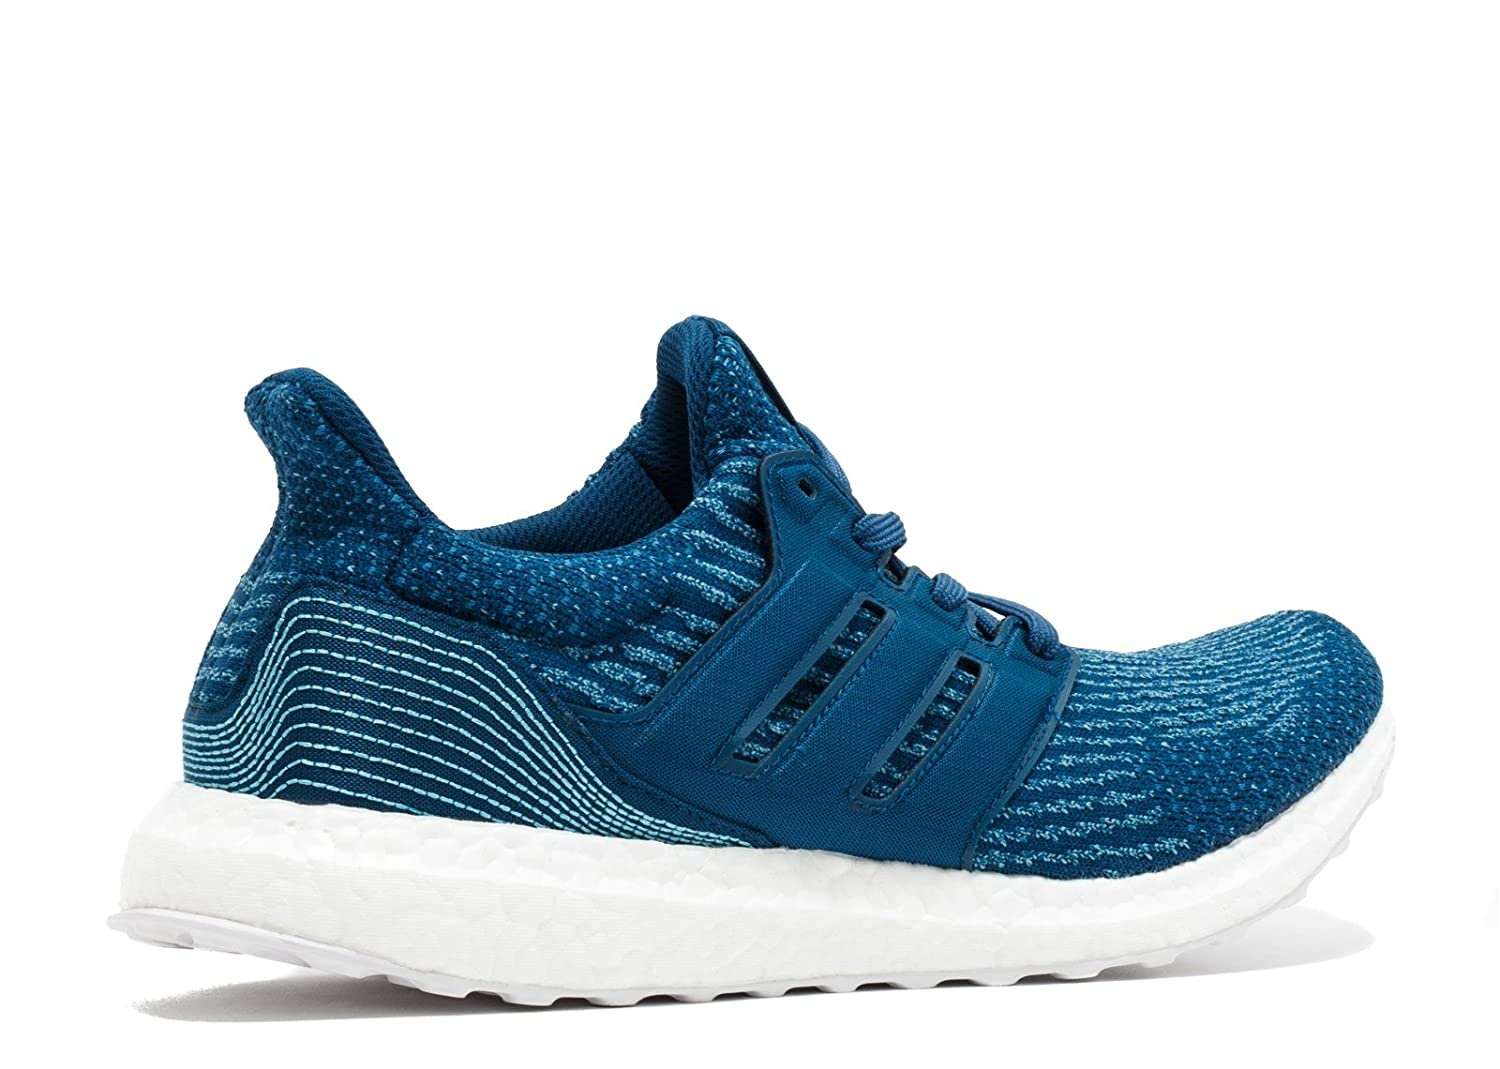 more photos ca56f 3eb6a Amazon.com | adidas Ultraboost 3.0 Parley Shoe - Men's ...